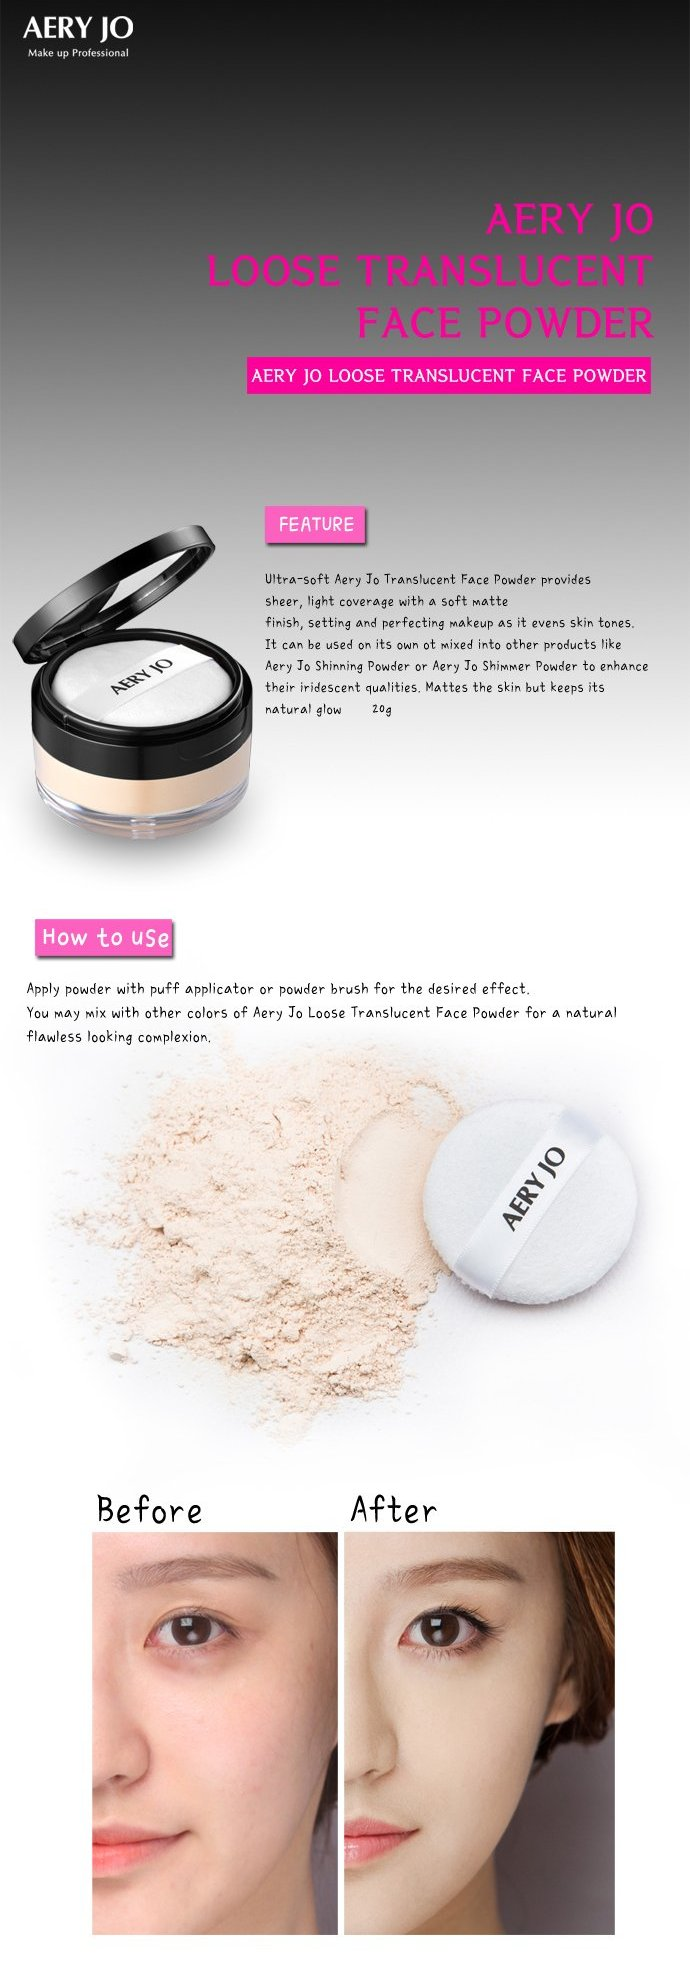 AERY JO Loose Translucent Powder